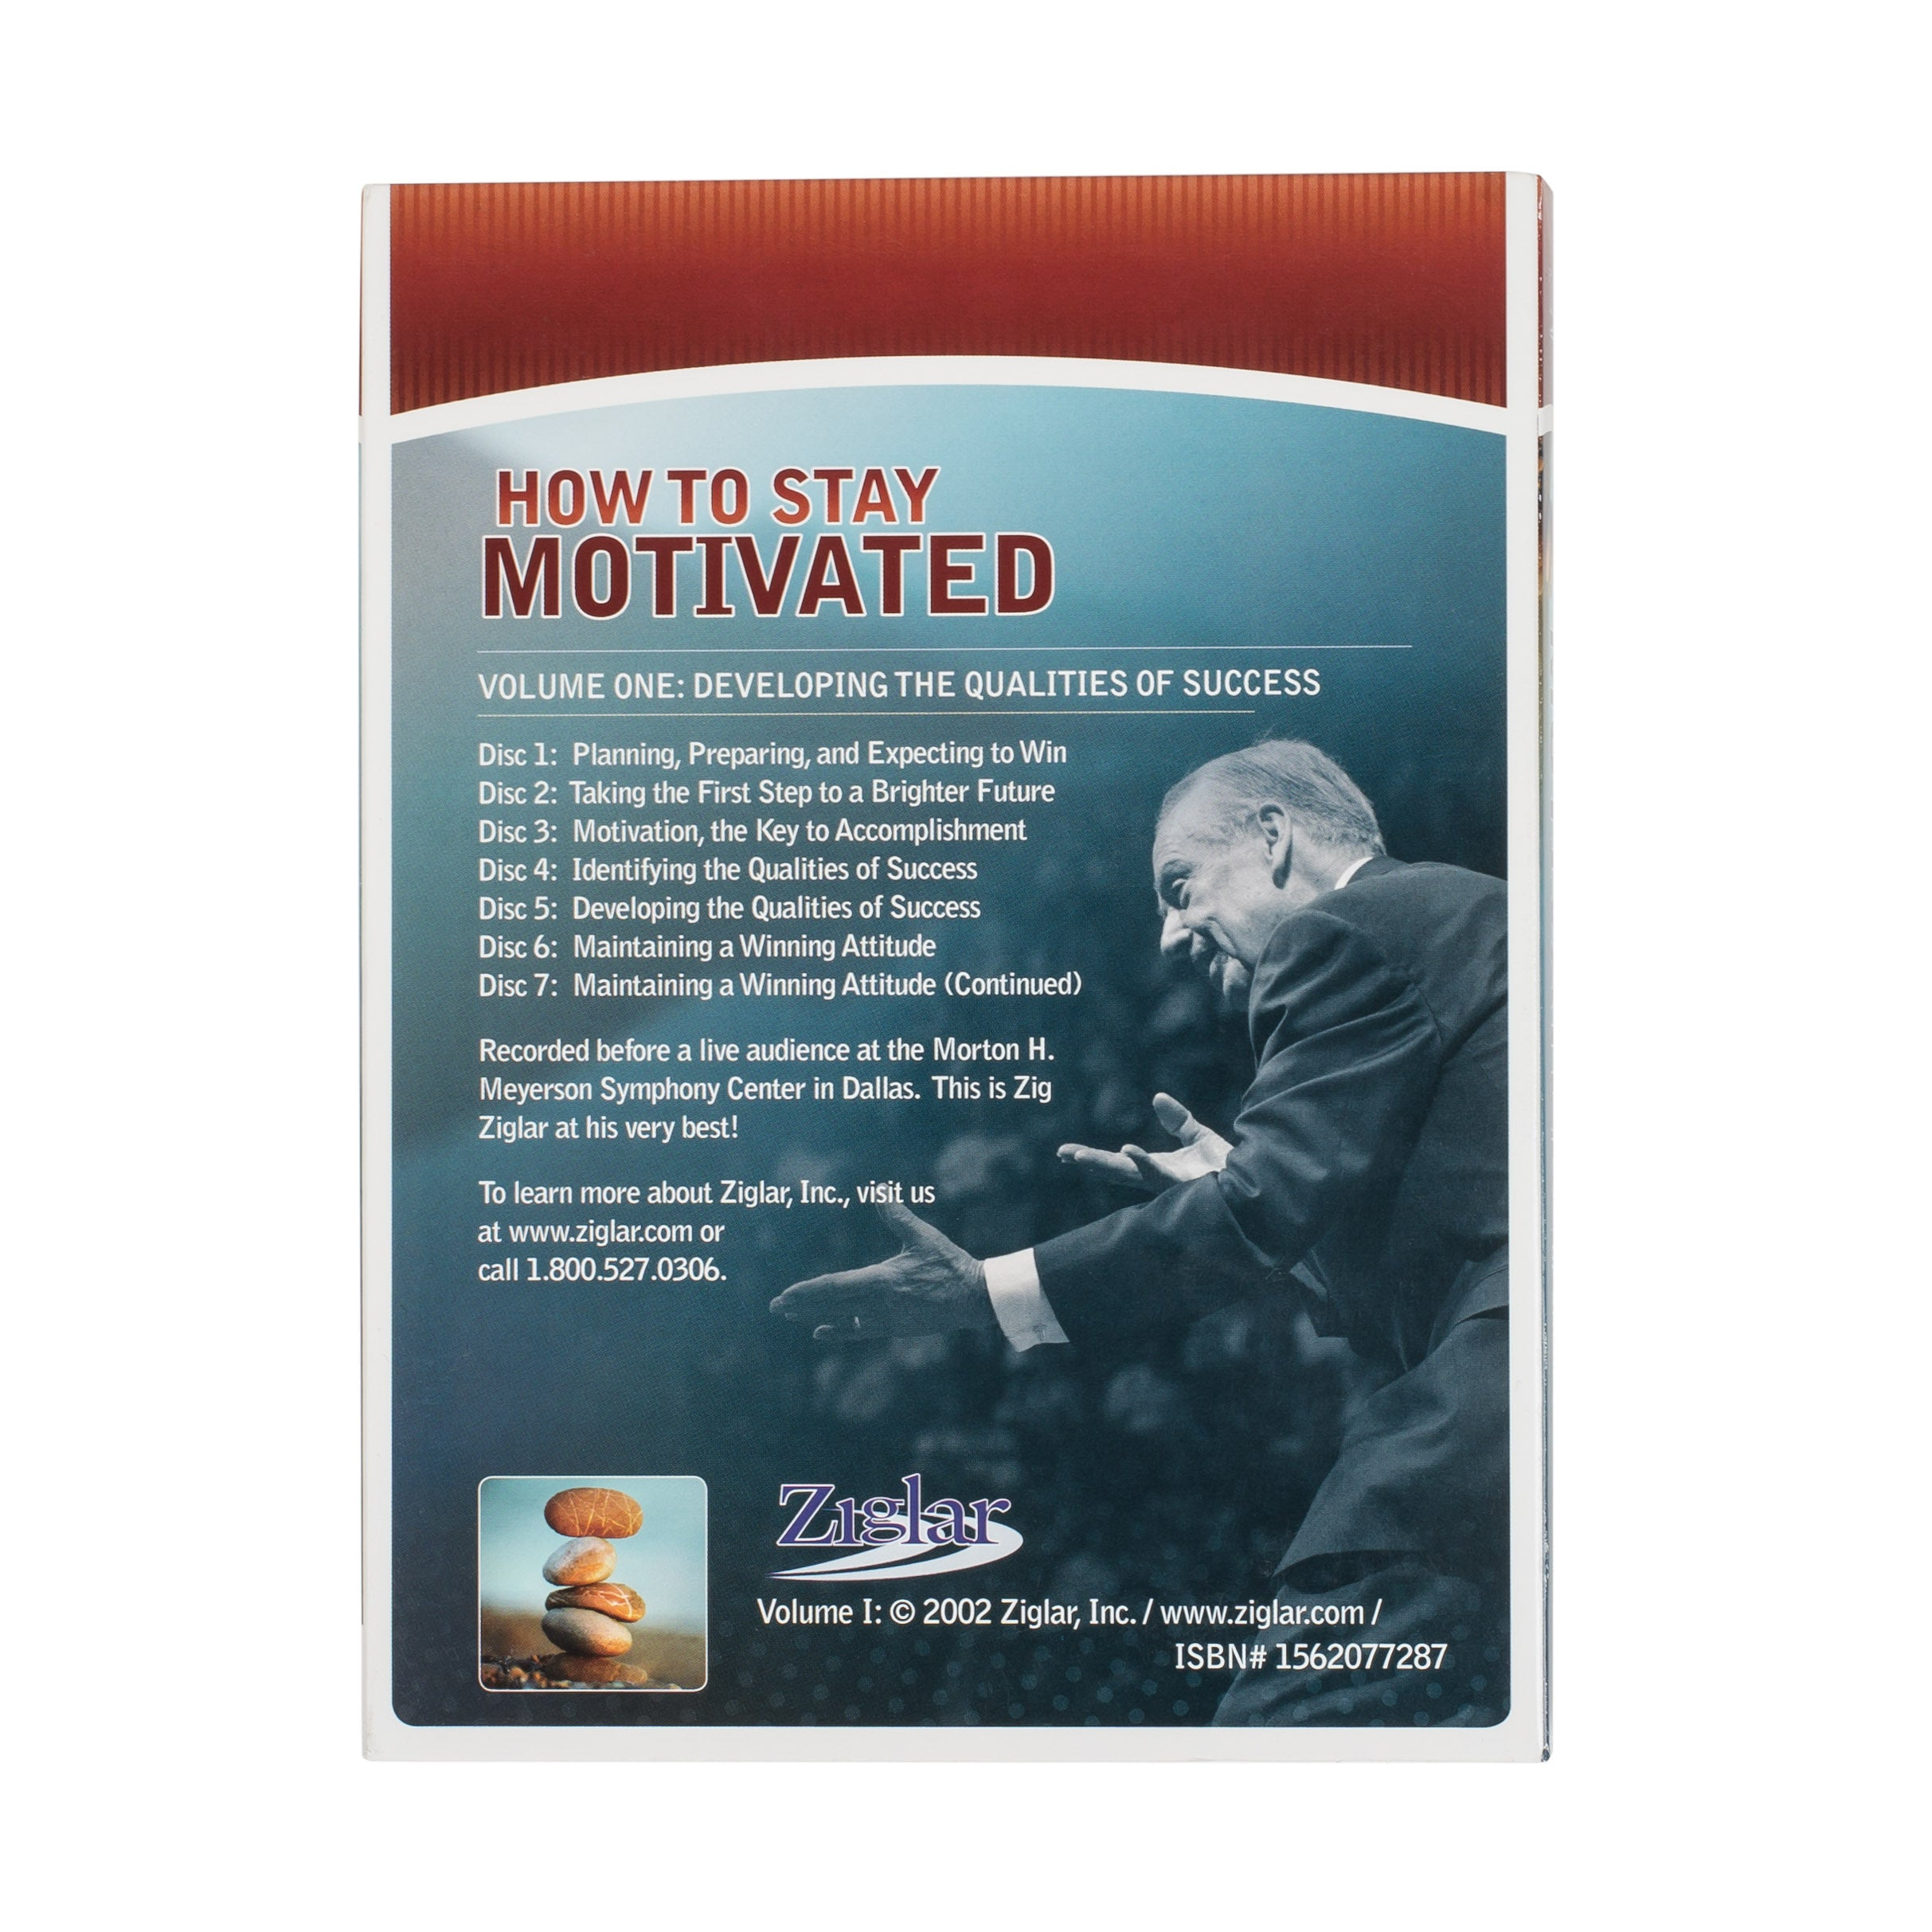 How To Stay Motivated – Vol. I: Developing the Qualities of Success by Zig Ziglar – 7 CDs